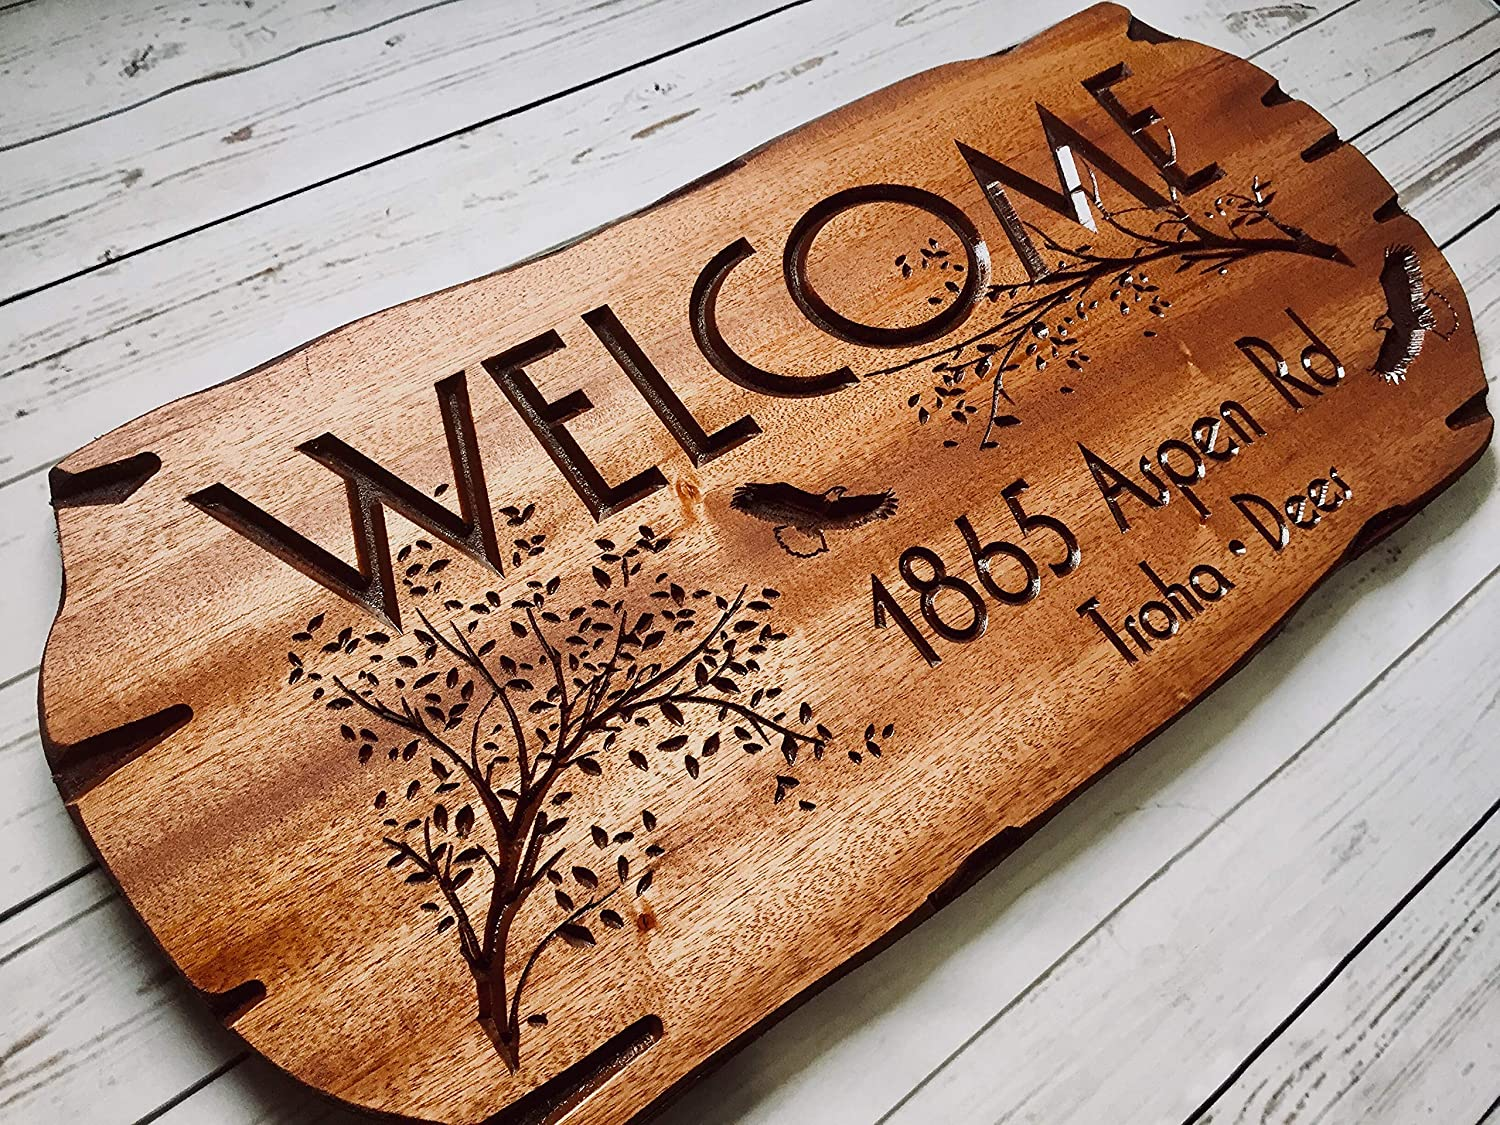 Personalized Dealing full price reduction Be super welcome Wooden Sign Address Family Welcome Cab Outdoor